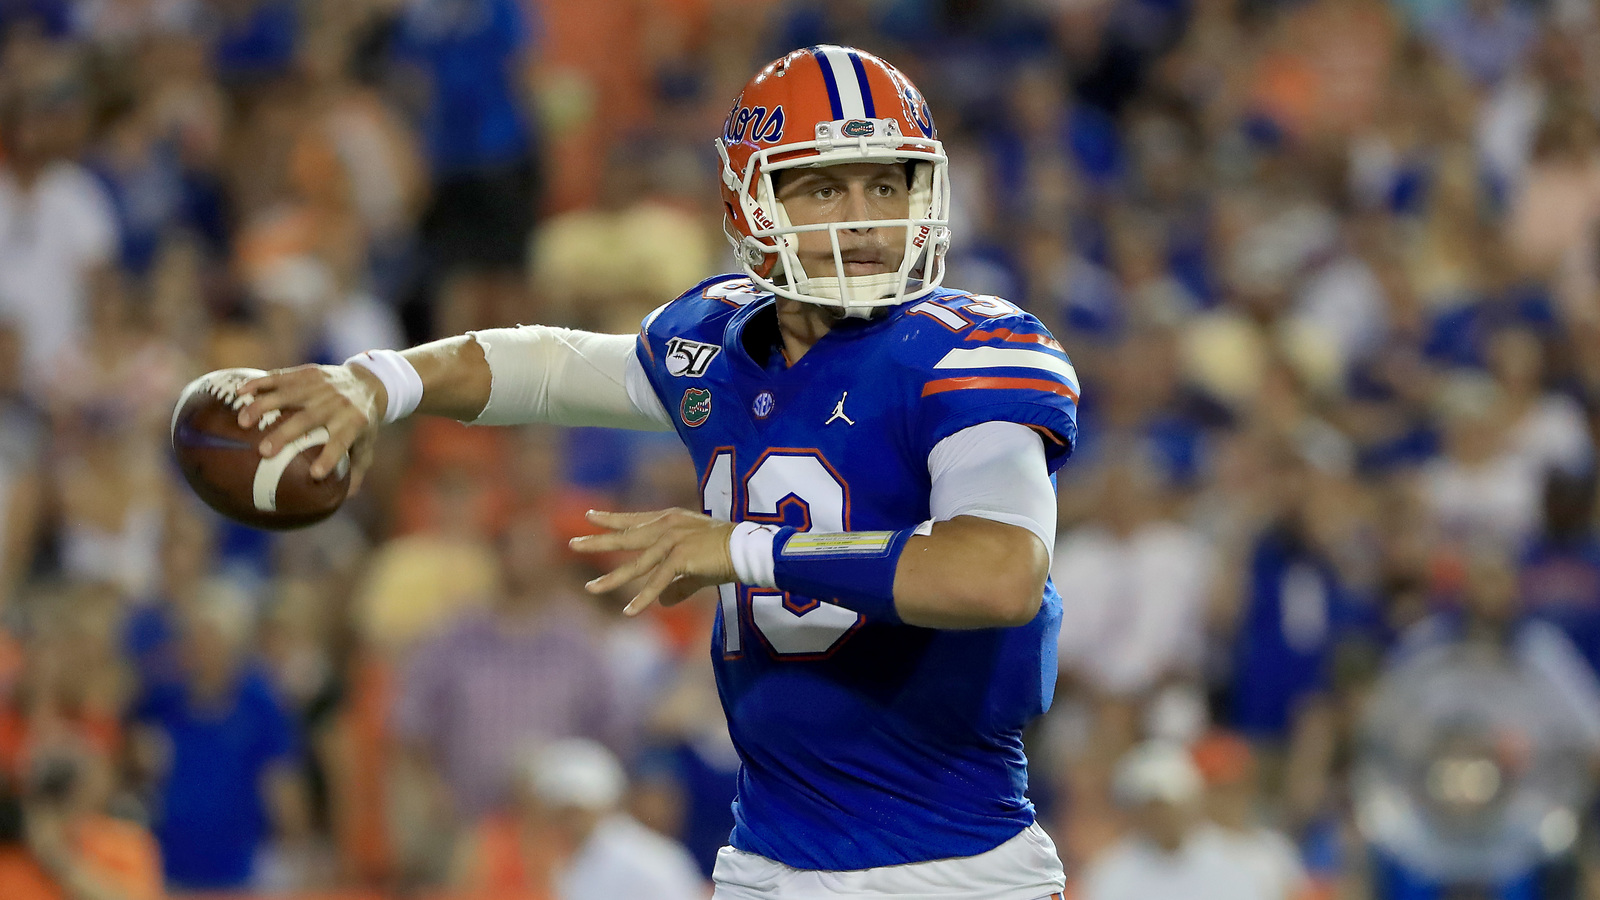 College football week 3: Picks and preview